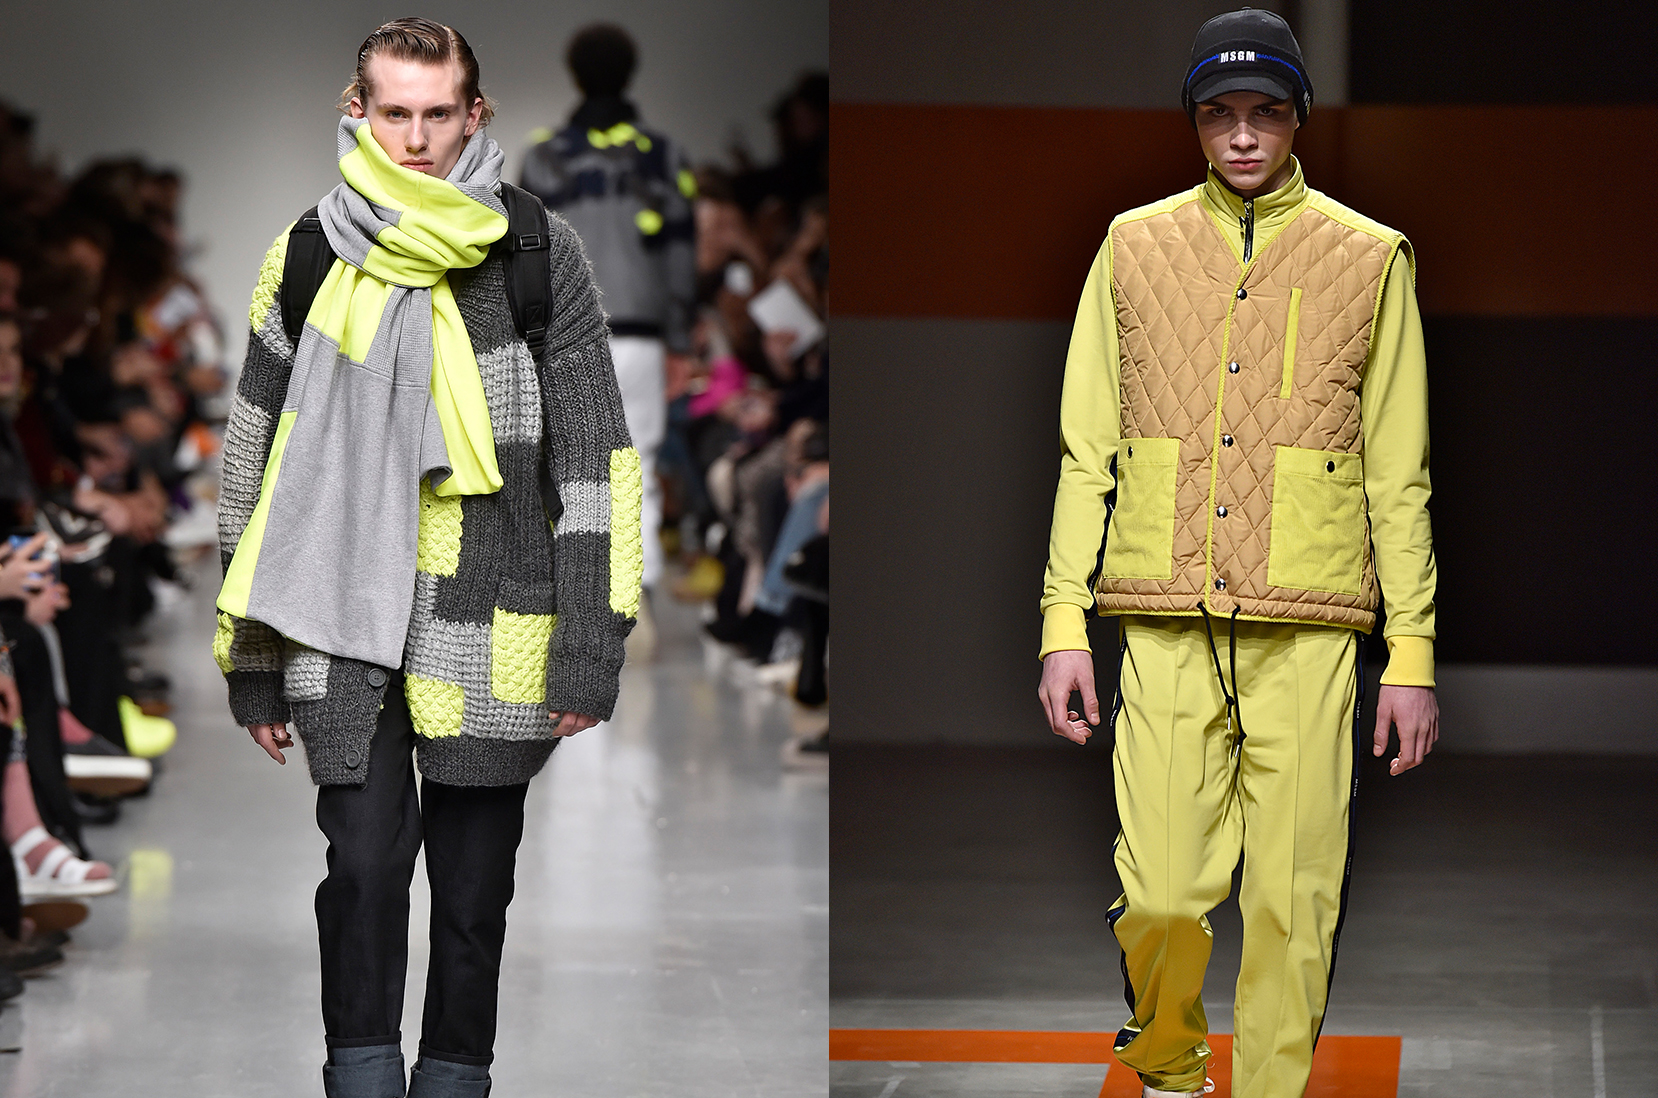 MSGM A/W 2017 © Victor VIRGILE/Gamma-Rapho/Getty Images | Christopher Raeburn efterår/vinter 2017 © Catwalking/Getty Images